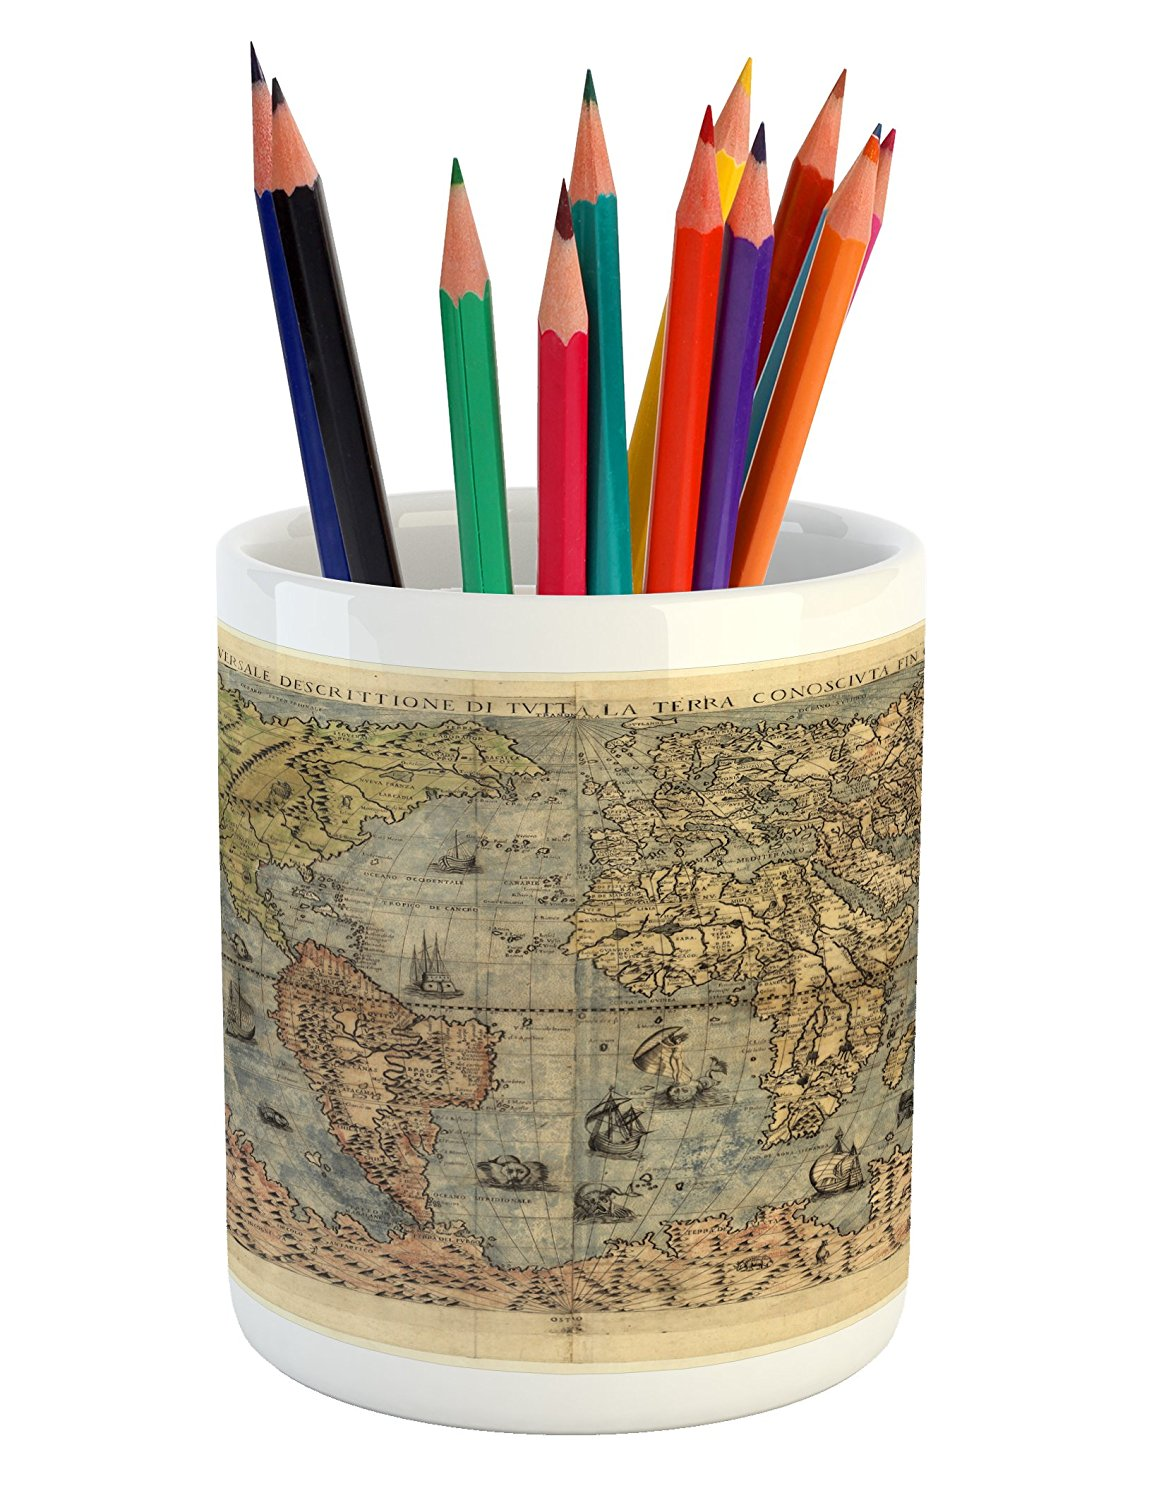 Antique Pencil Pen Holder by Lunarable, Ancient Map of World Global History Stained Paper Oceans Lands Vintage Atlas, Printed Ceramic Pencil Pen Holder for Desk Office Accessory, Cream Green Rose